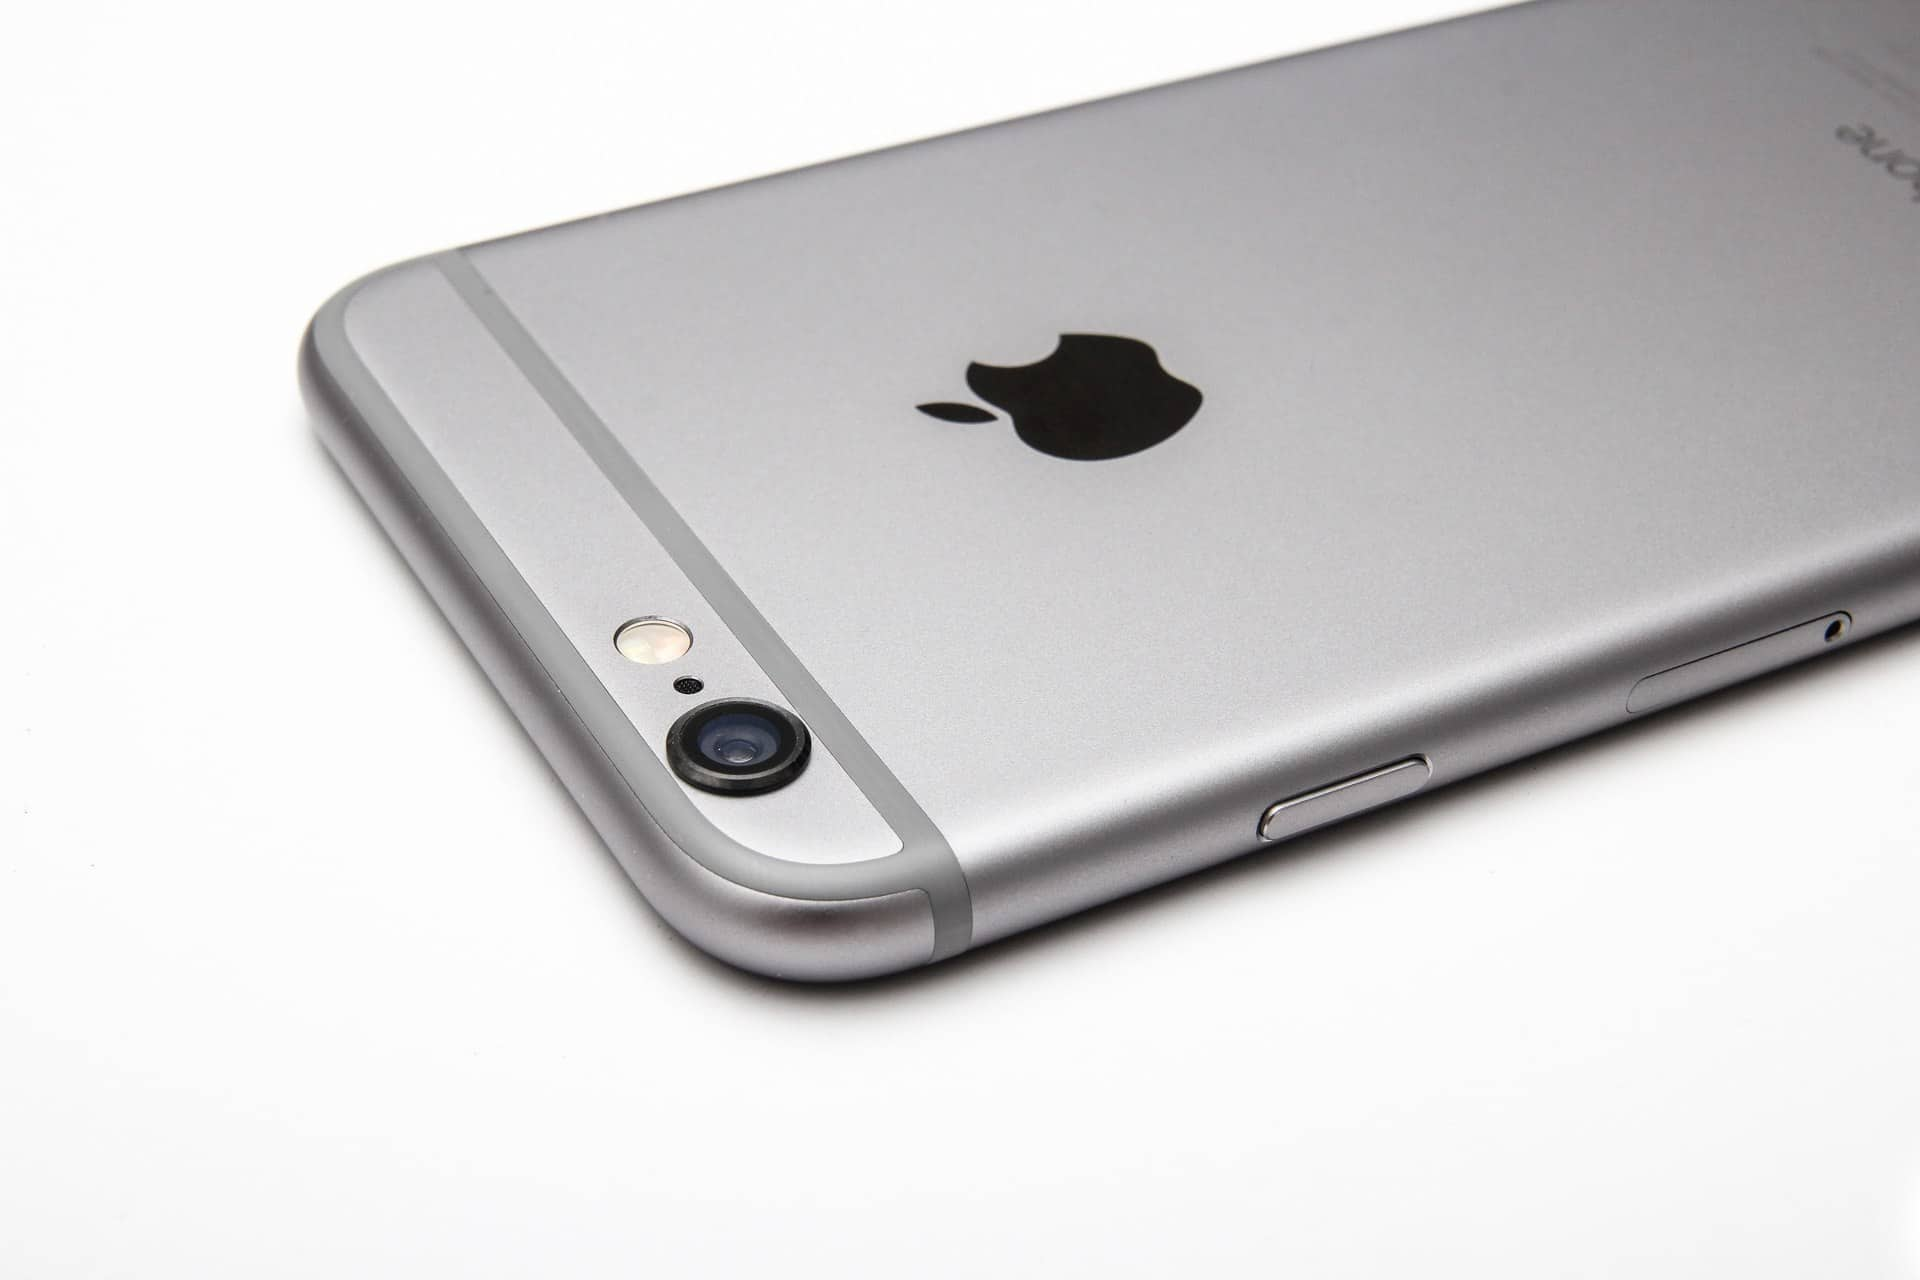 iPhone 6 Issues Plague Consumers